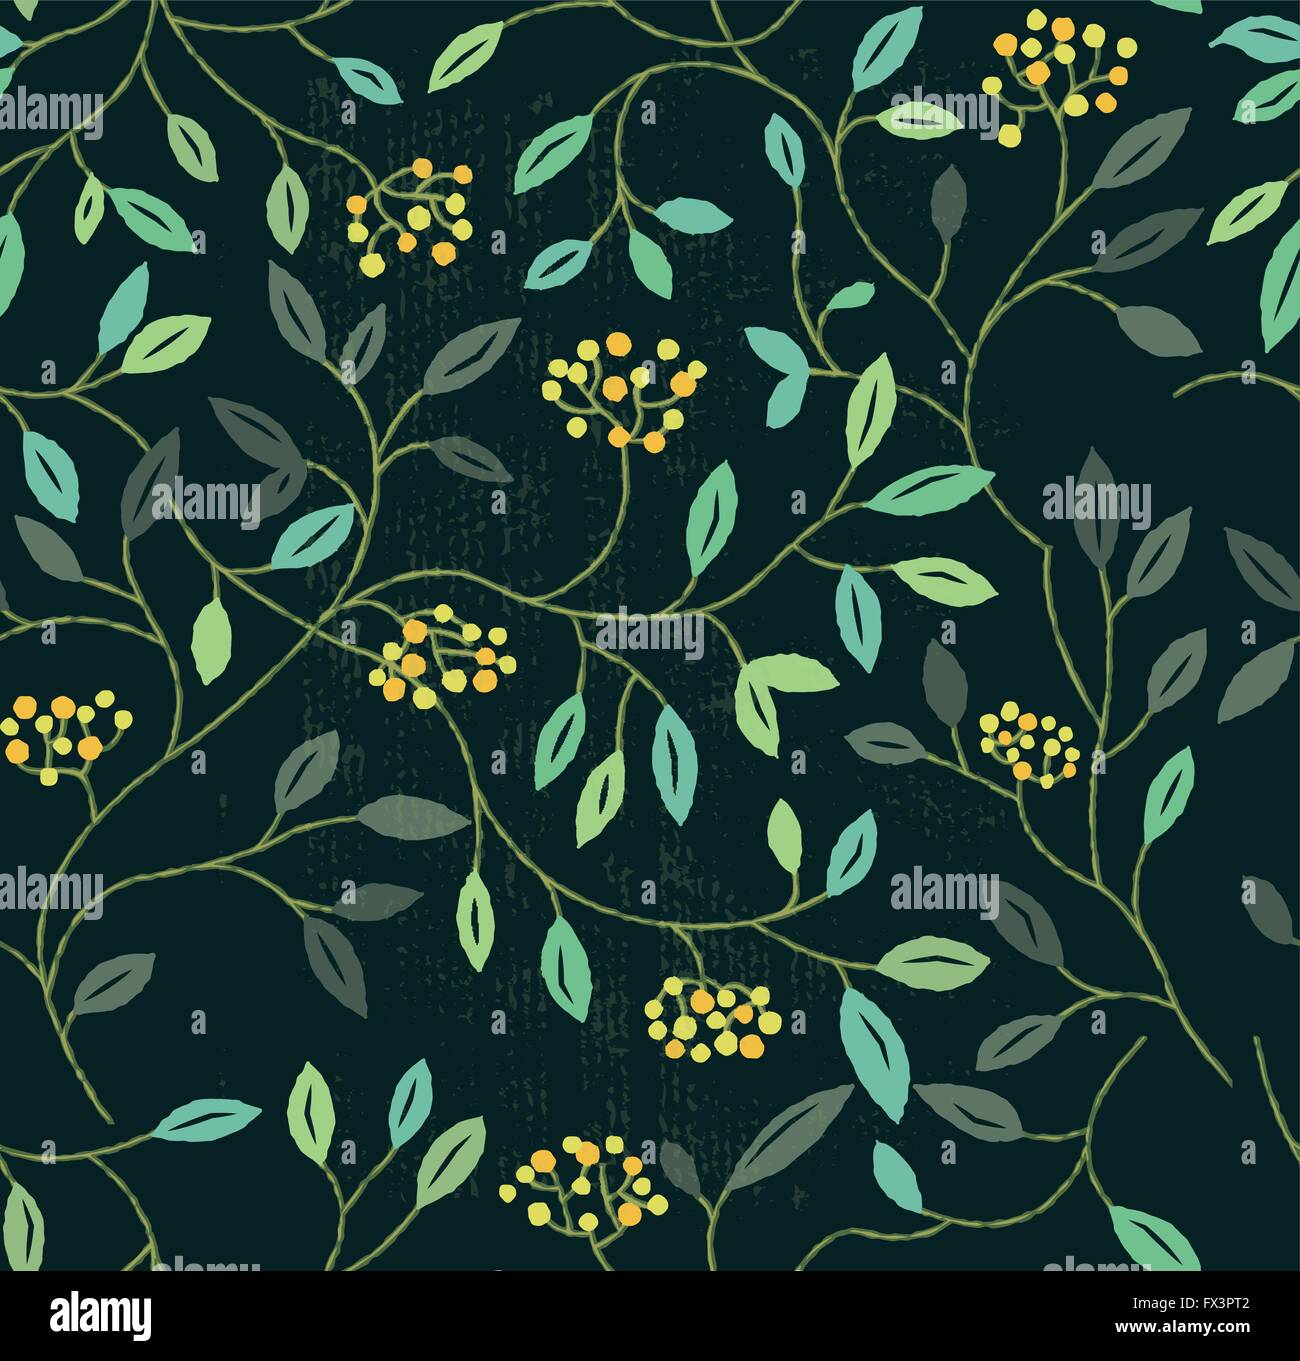 Floral Summer Seamless Pattern. Repeating floral elements background. Vector illustration - Stock Image